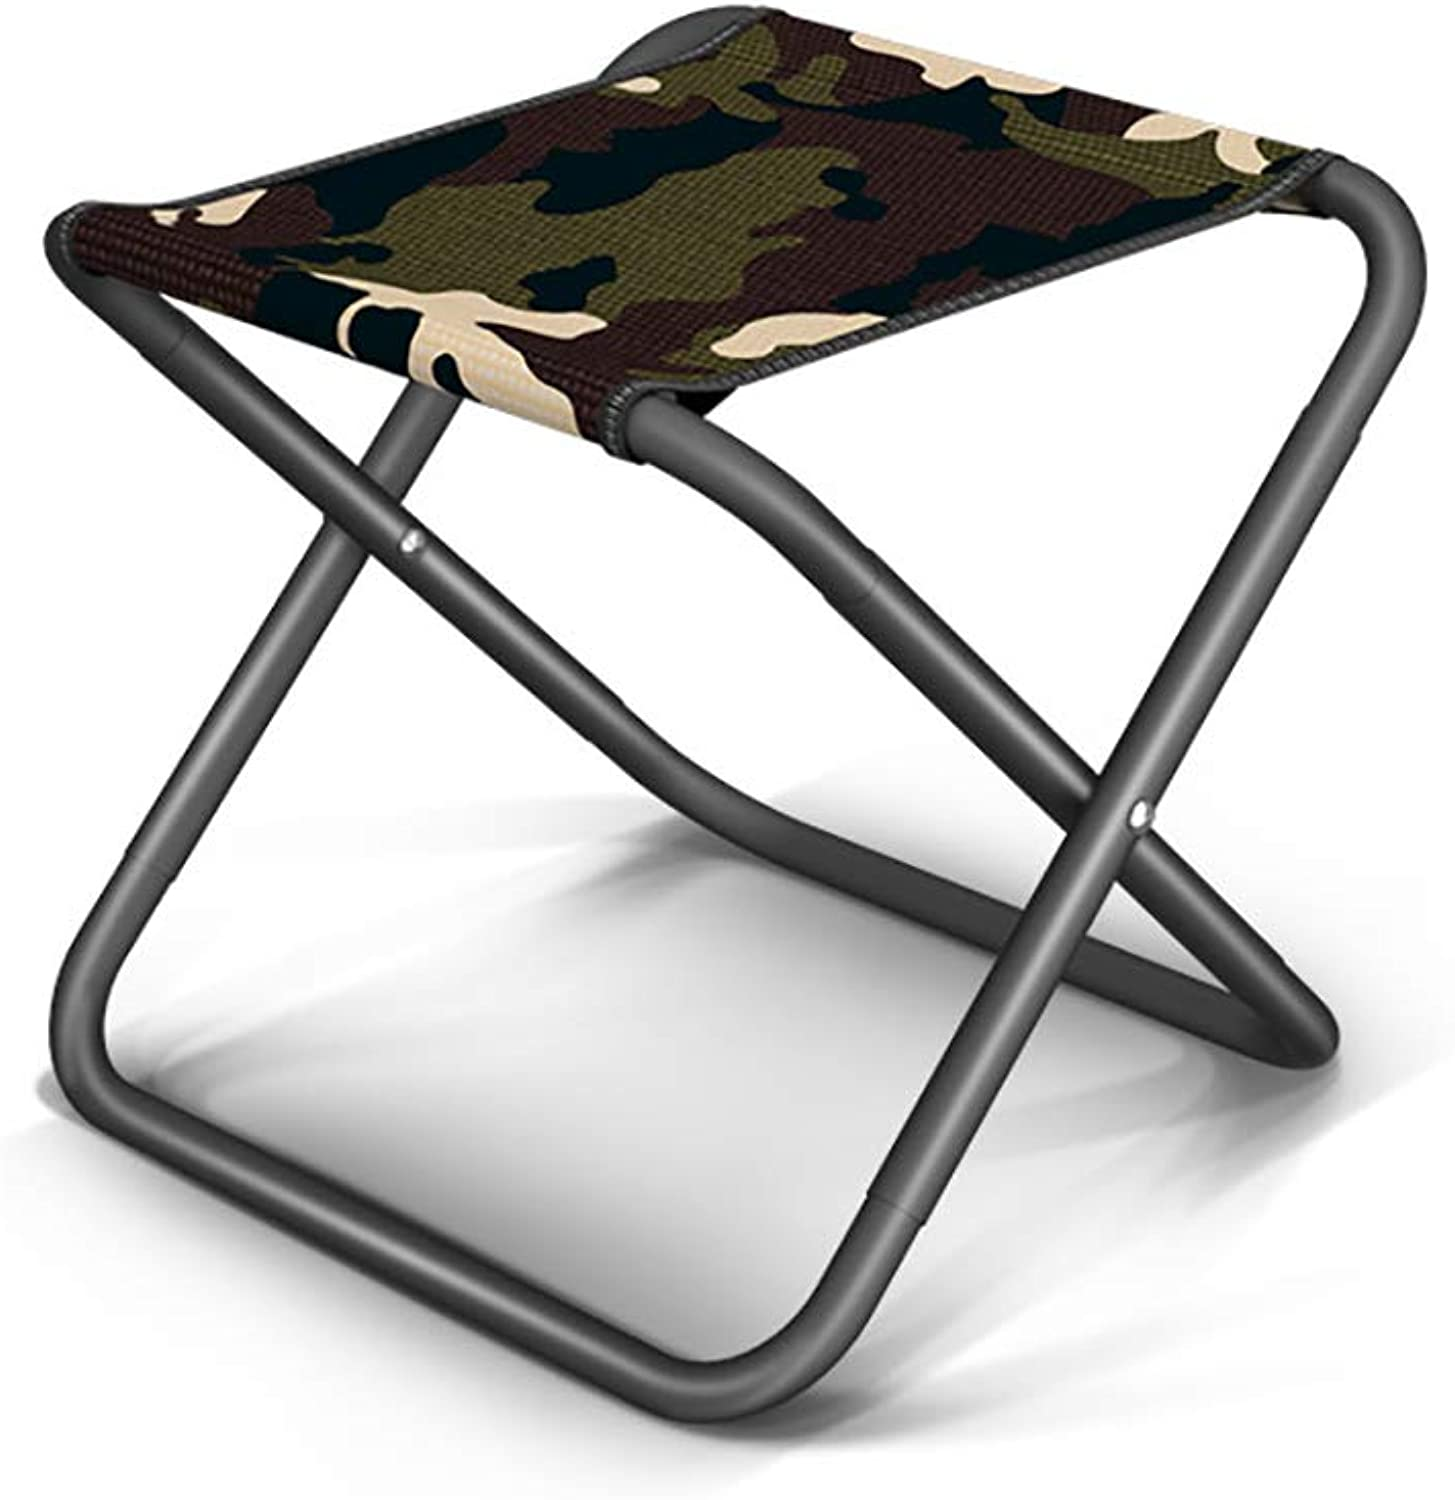 Aiwoxing Small Folding Camping Stool Ultralight PortableOutdoor Folding Chair Sketch Camp Chair Bench for Fishing Hiking Mountaineering Mini Step Slacker Stool + Carry Bag - Camouflage